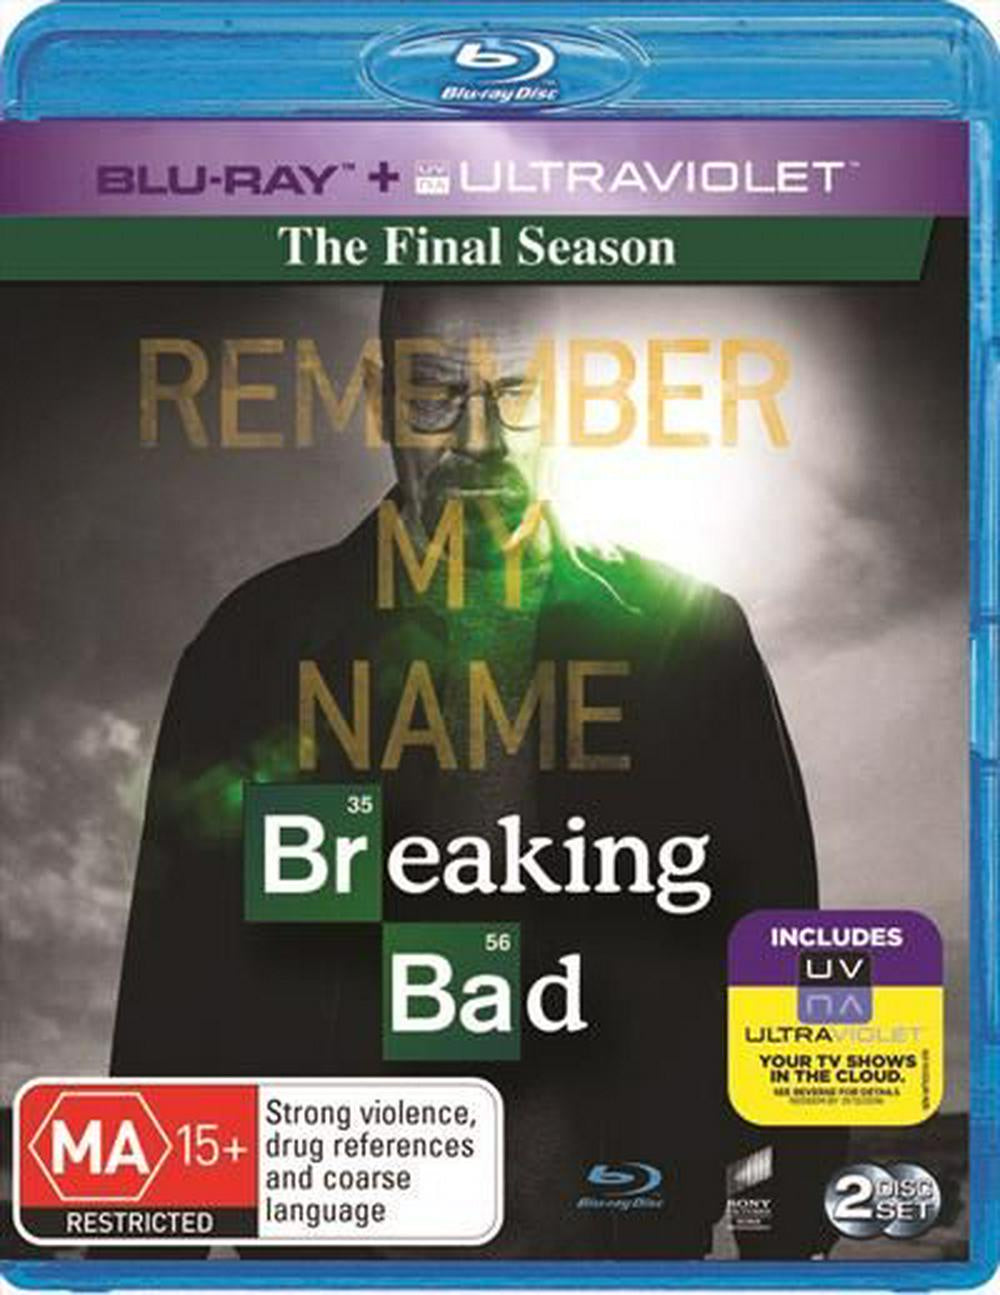 BREAKING BAD THE FINAL SEASON R16 2BLURAY+ULTRAVIOLET VG